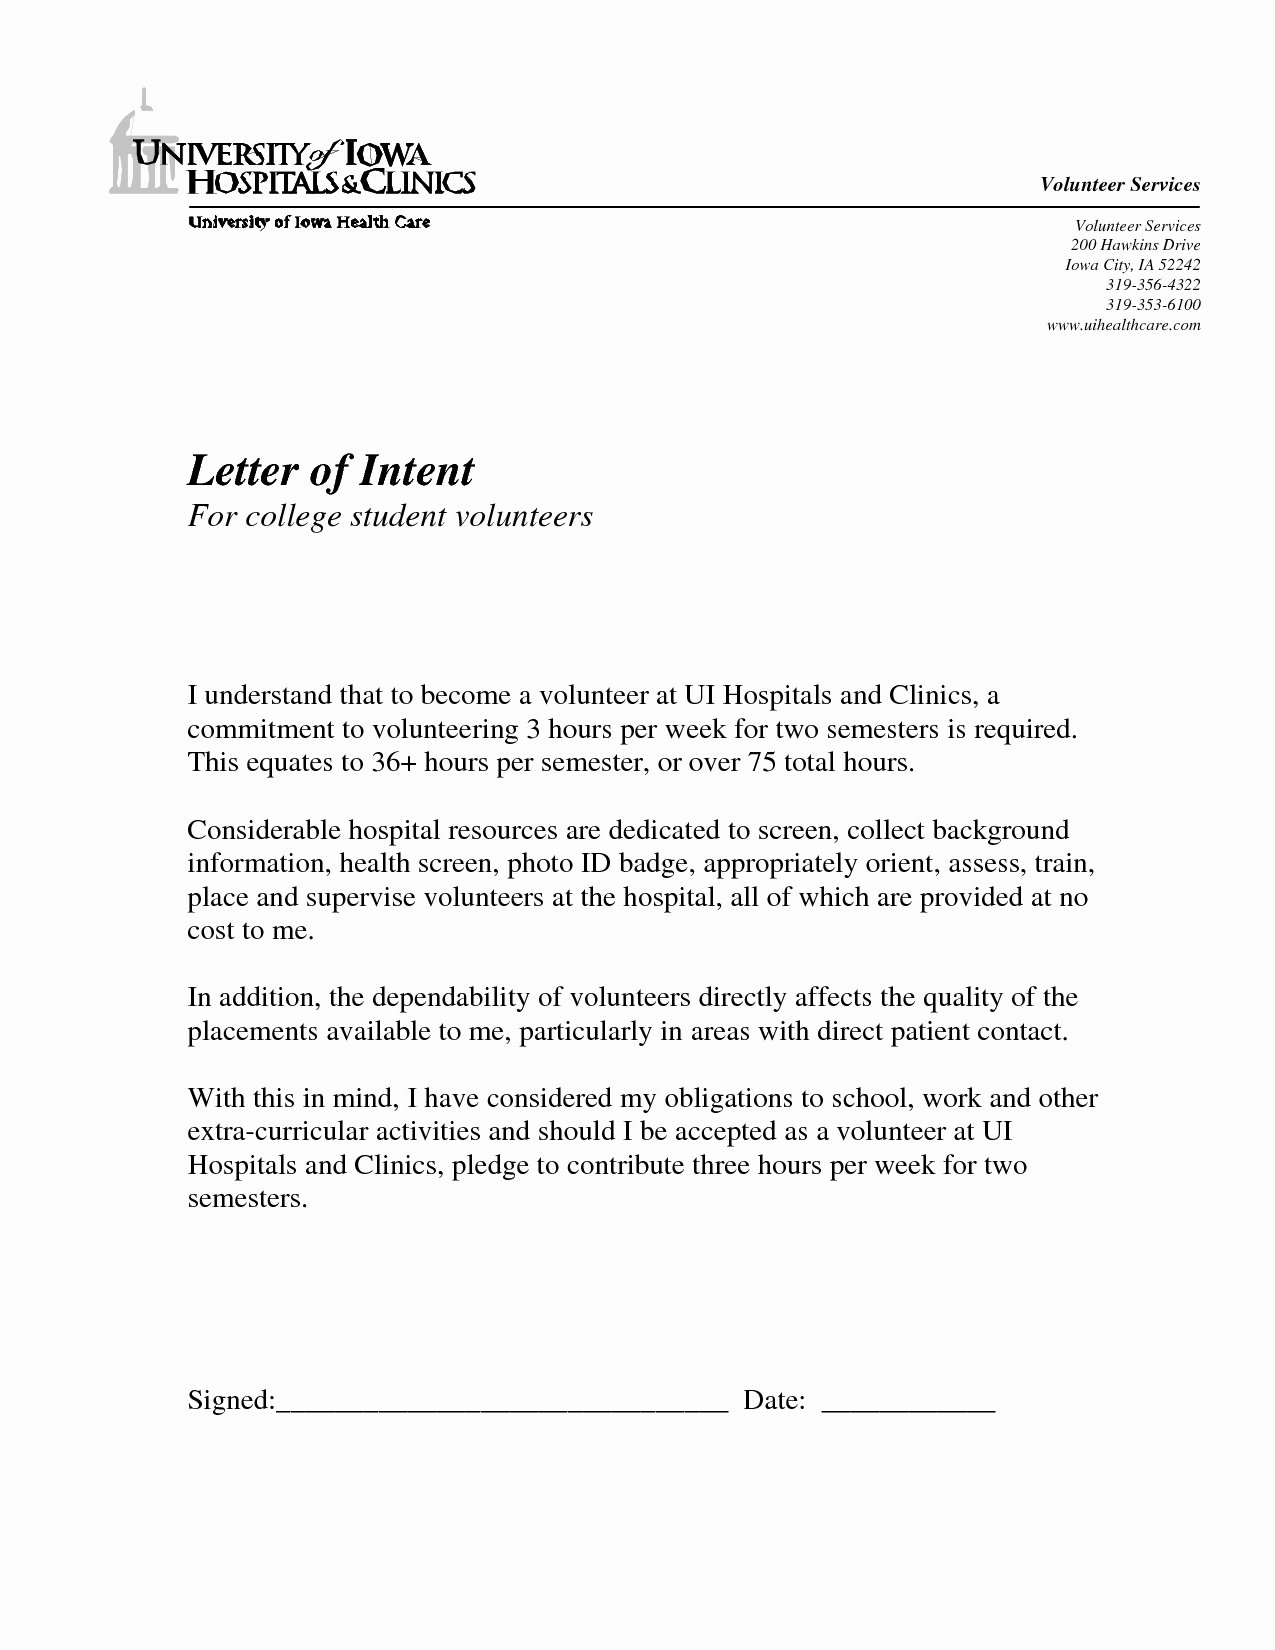 Letter Of Intent Template Awesome Homeschool Letter Intent Template Collection